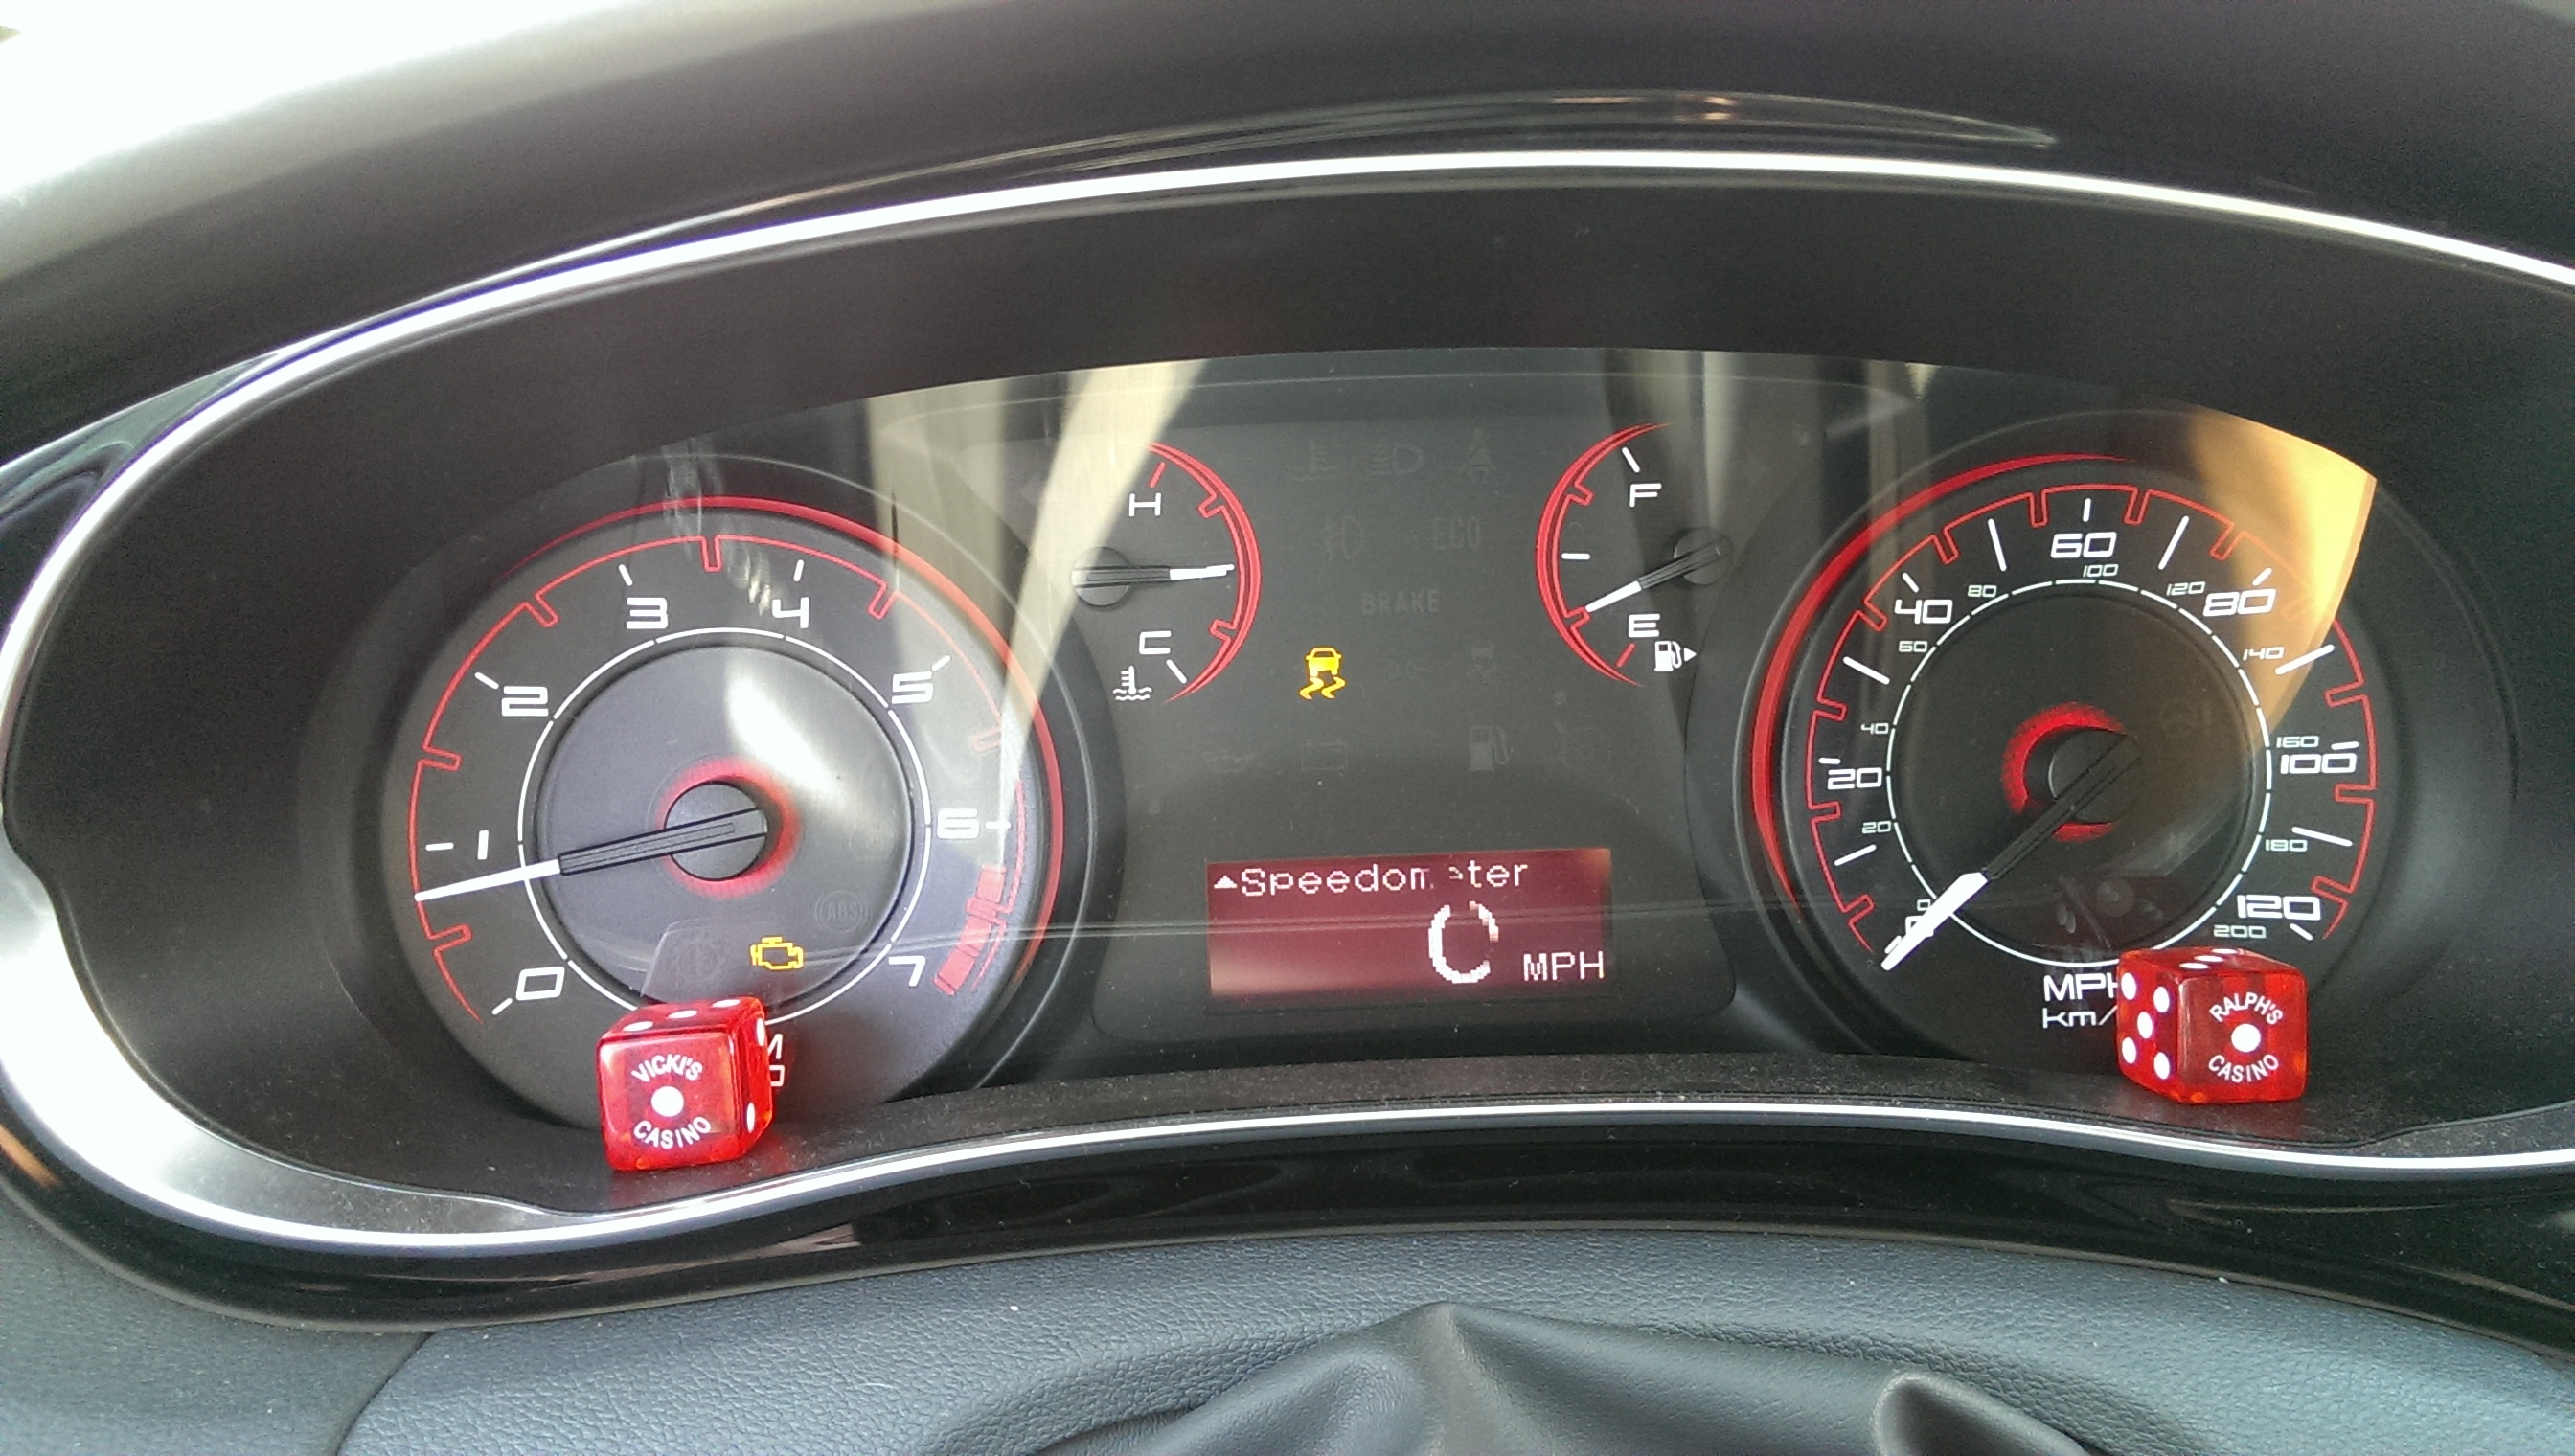 Check Engine Light and Traction Light On